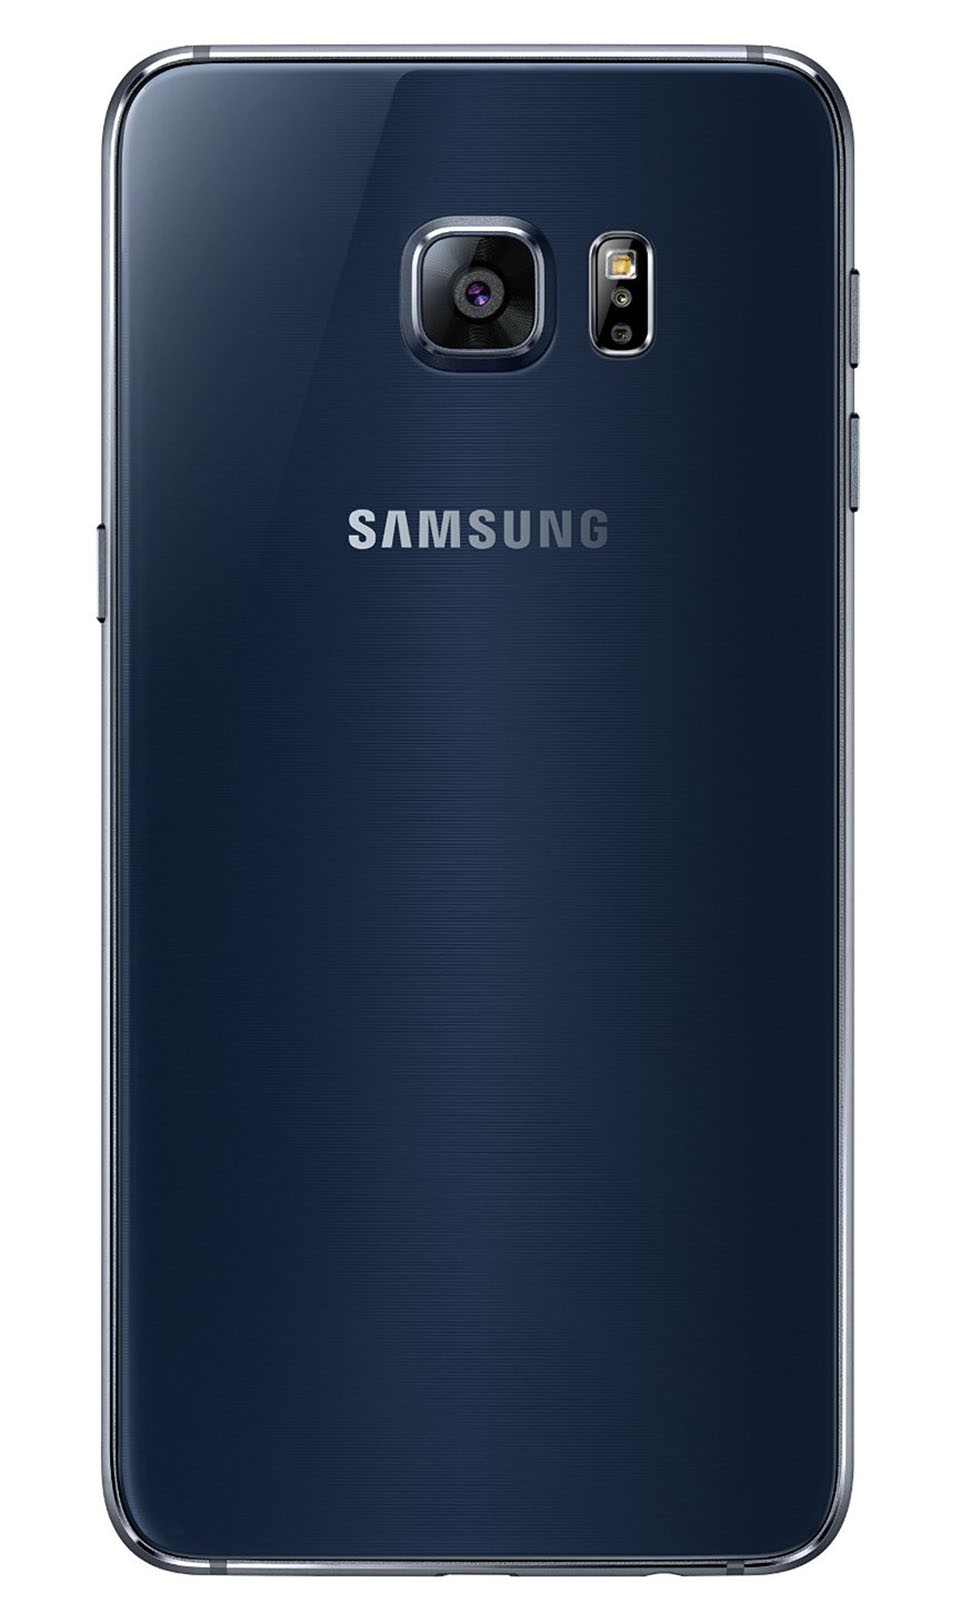 samsung galaxy s6 edge plus 32gb verizon unlocked gsm. Black Bedroom Furniture Sets. Home Design Ideas